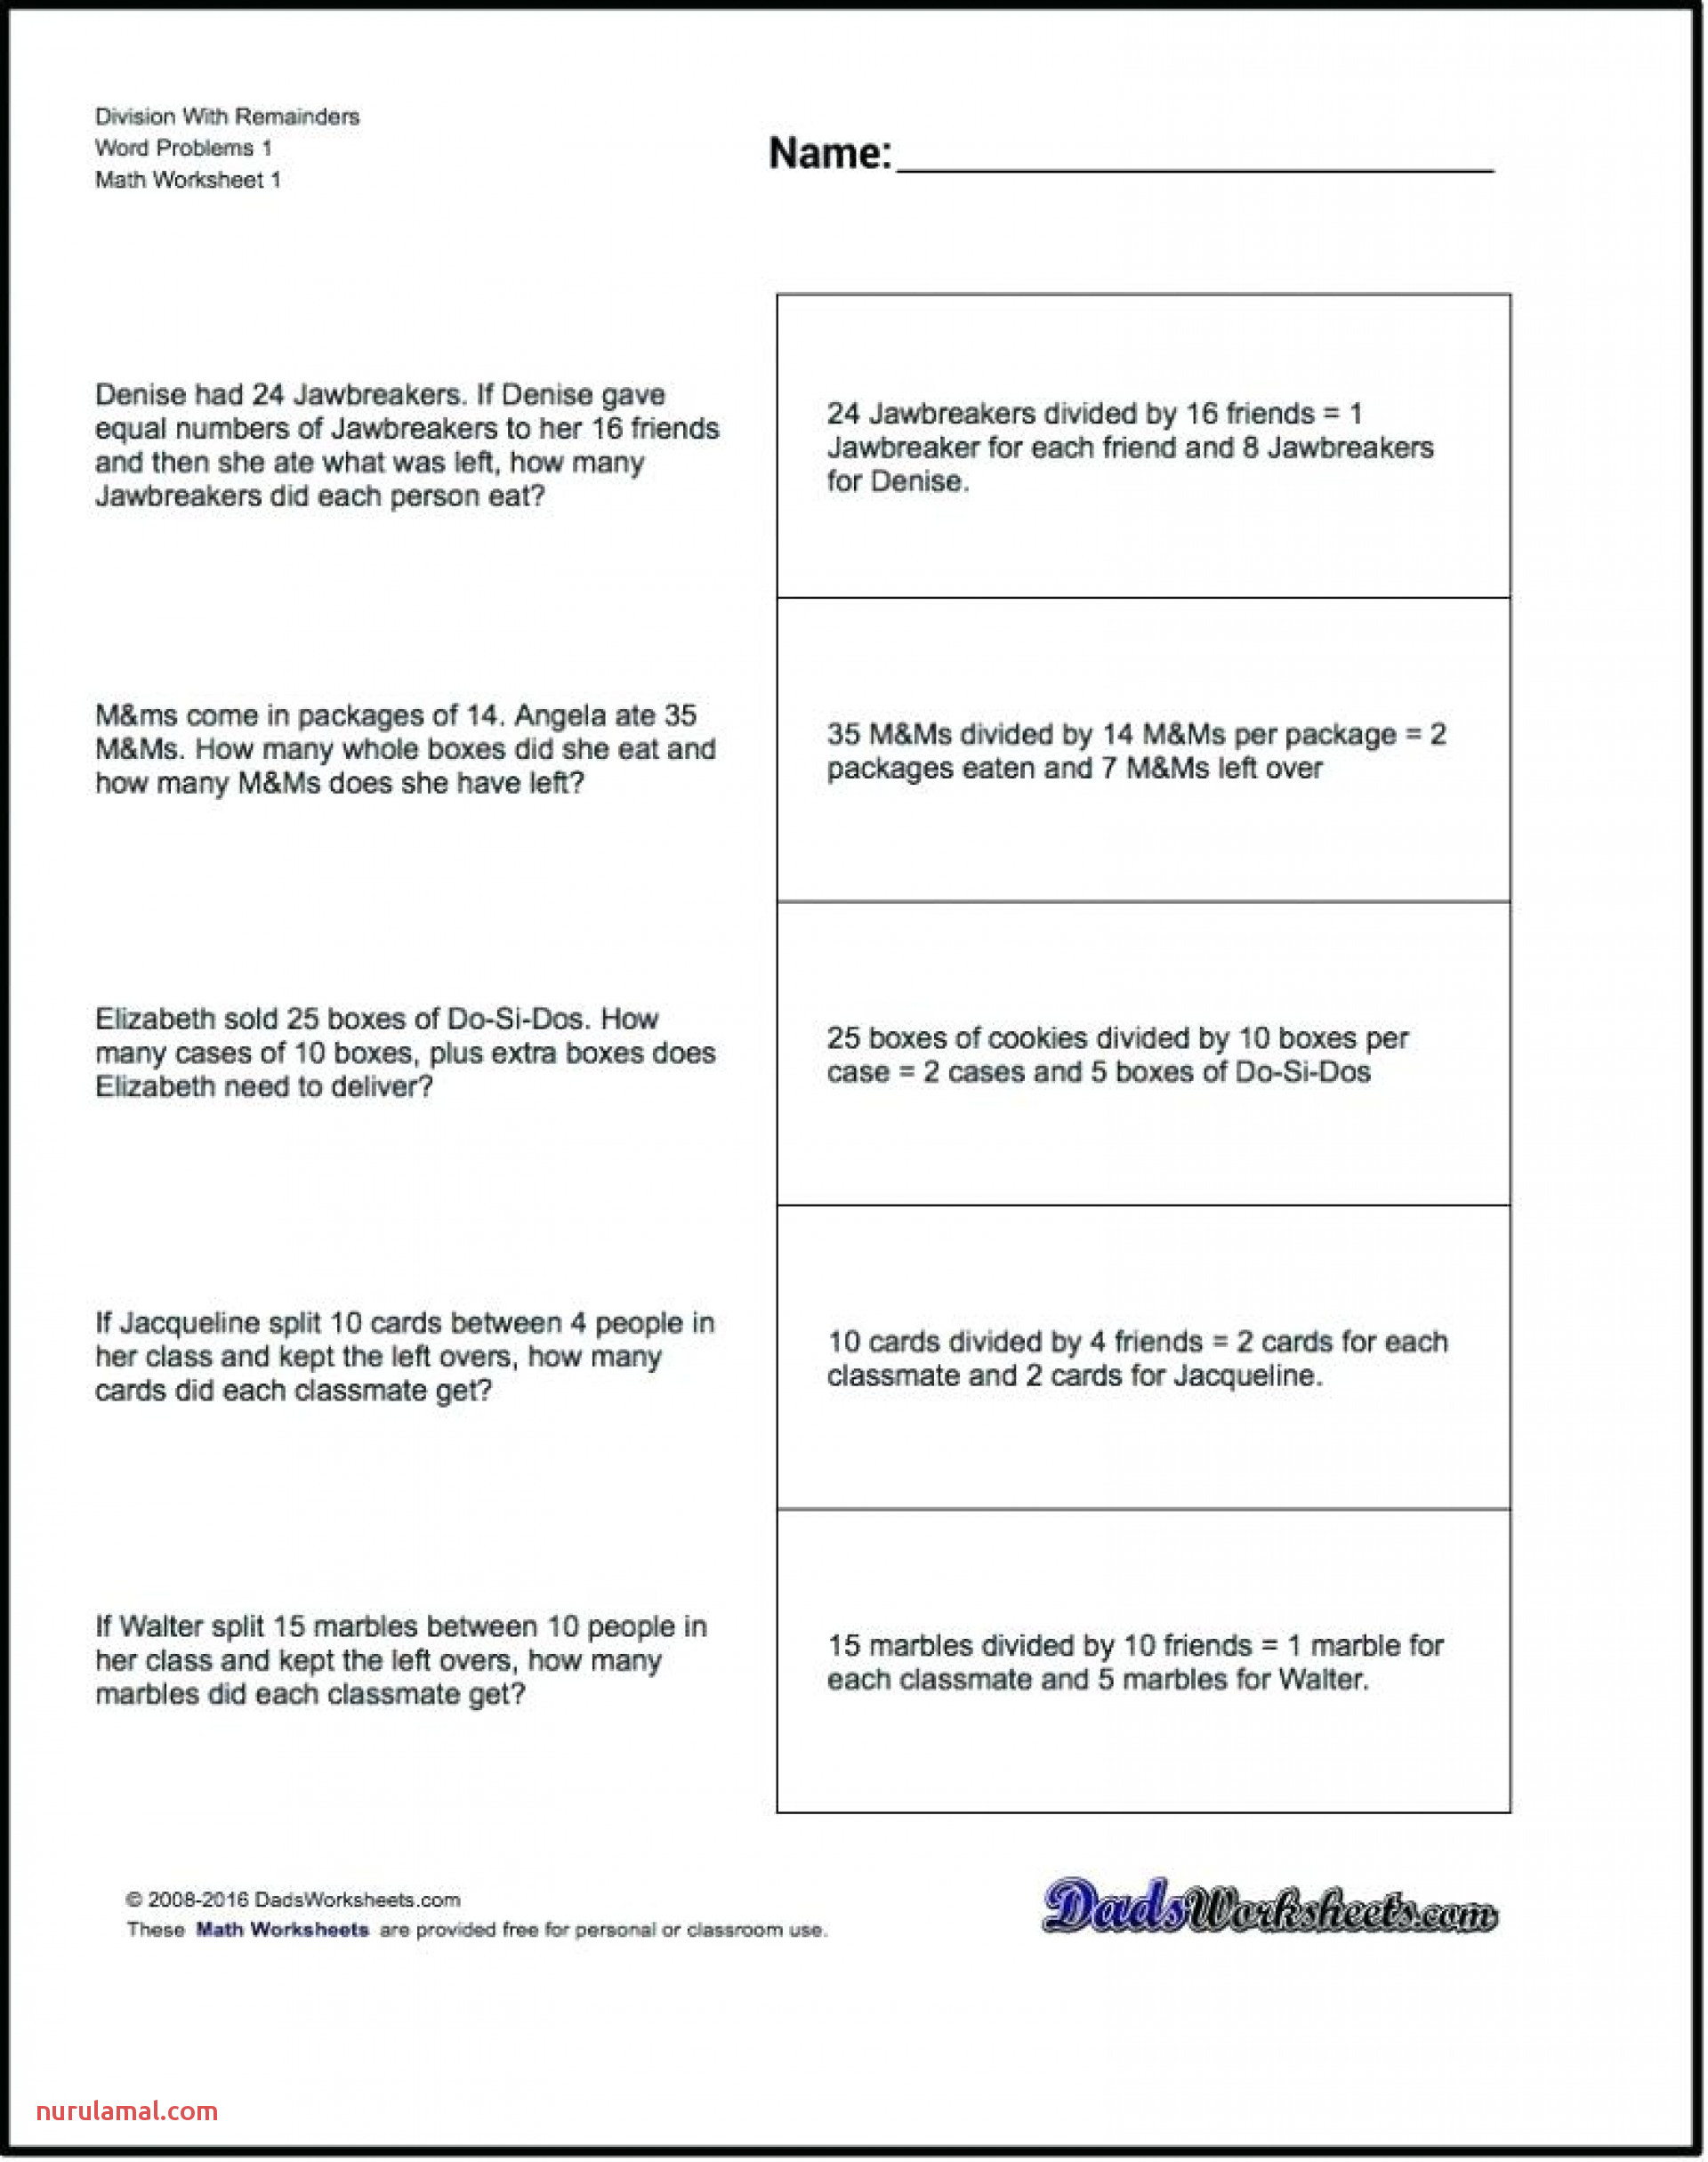 Worksheet Ideas Multiply by Missing Factor Grade